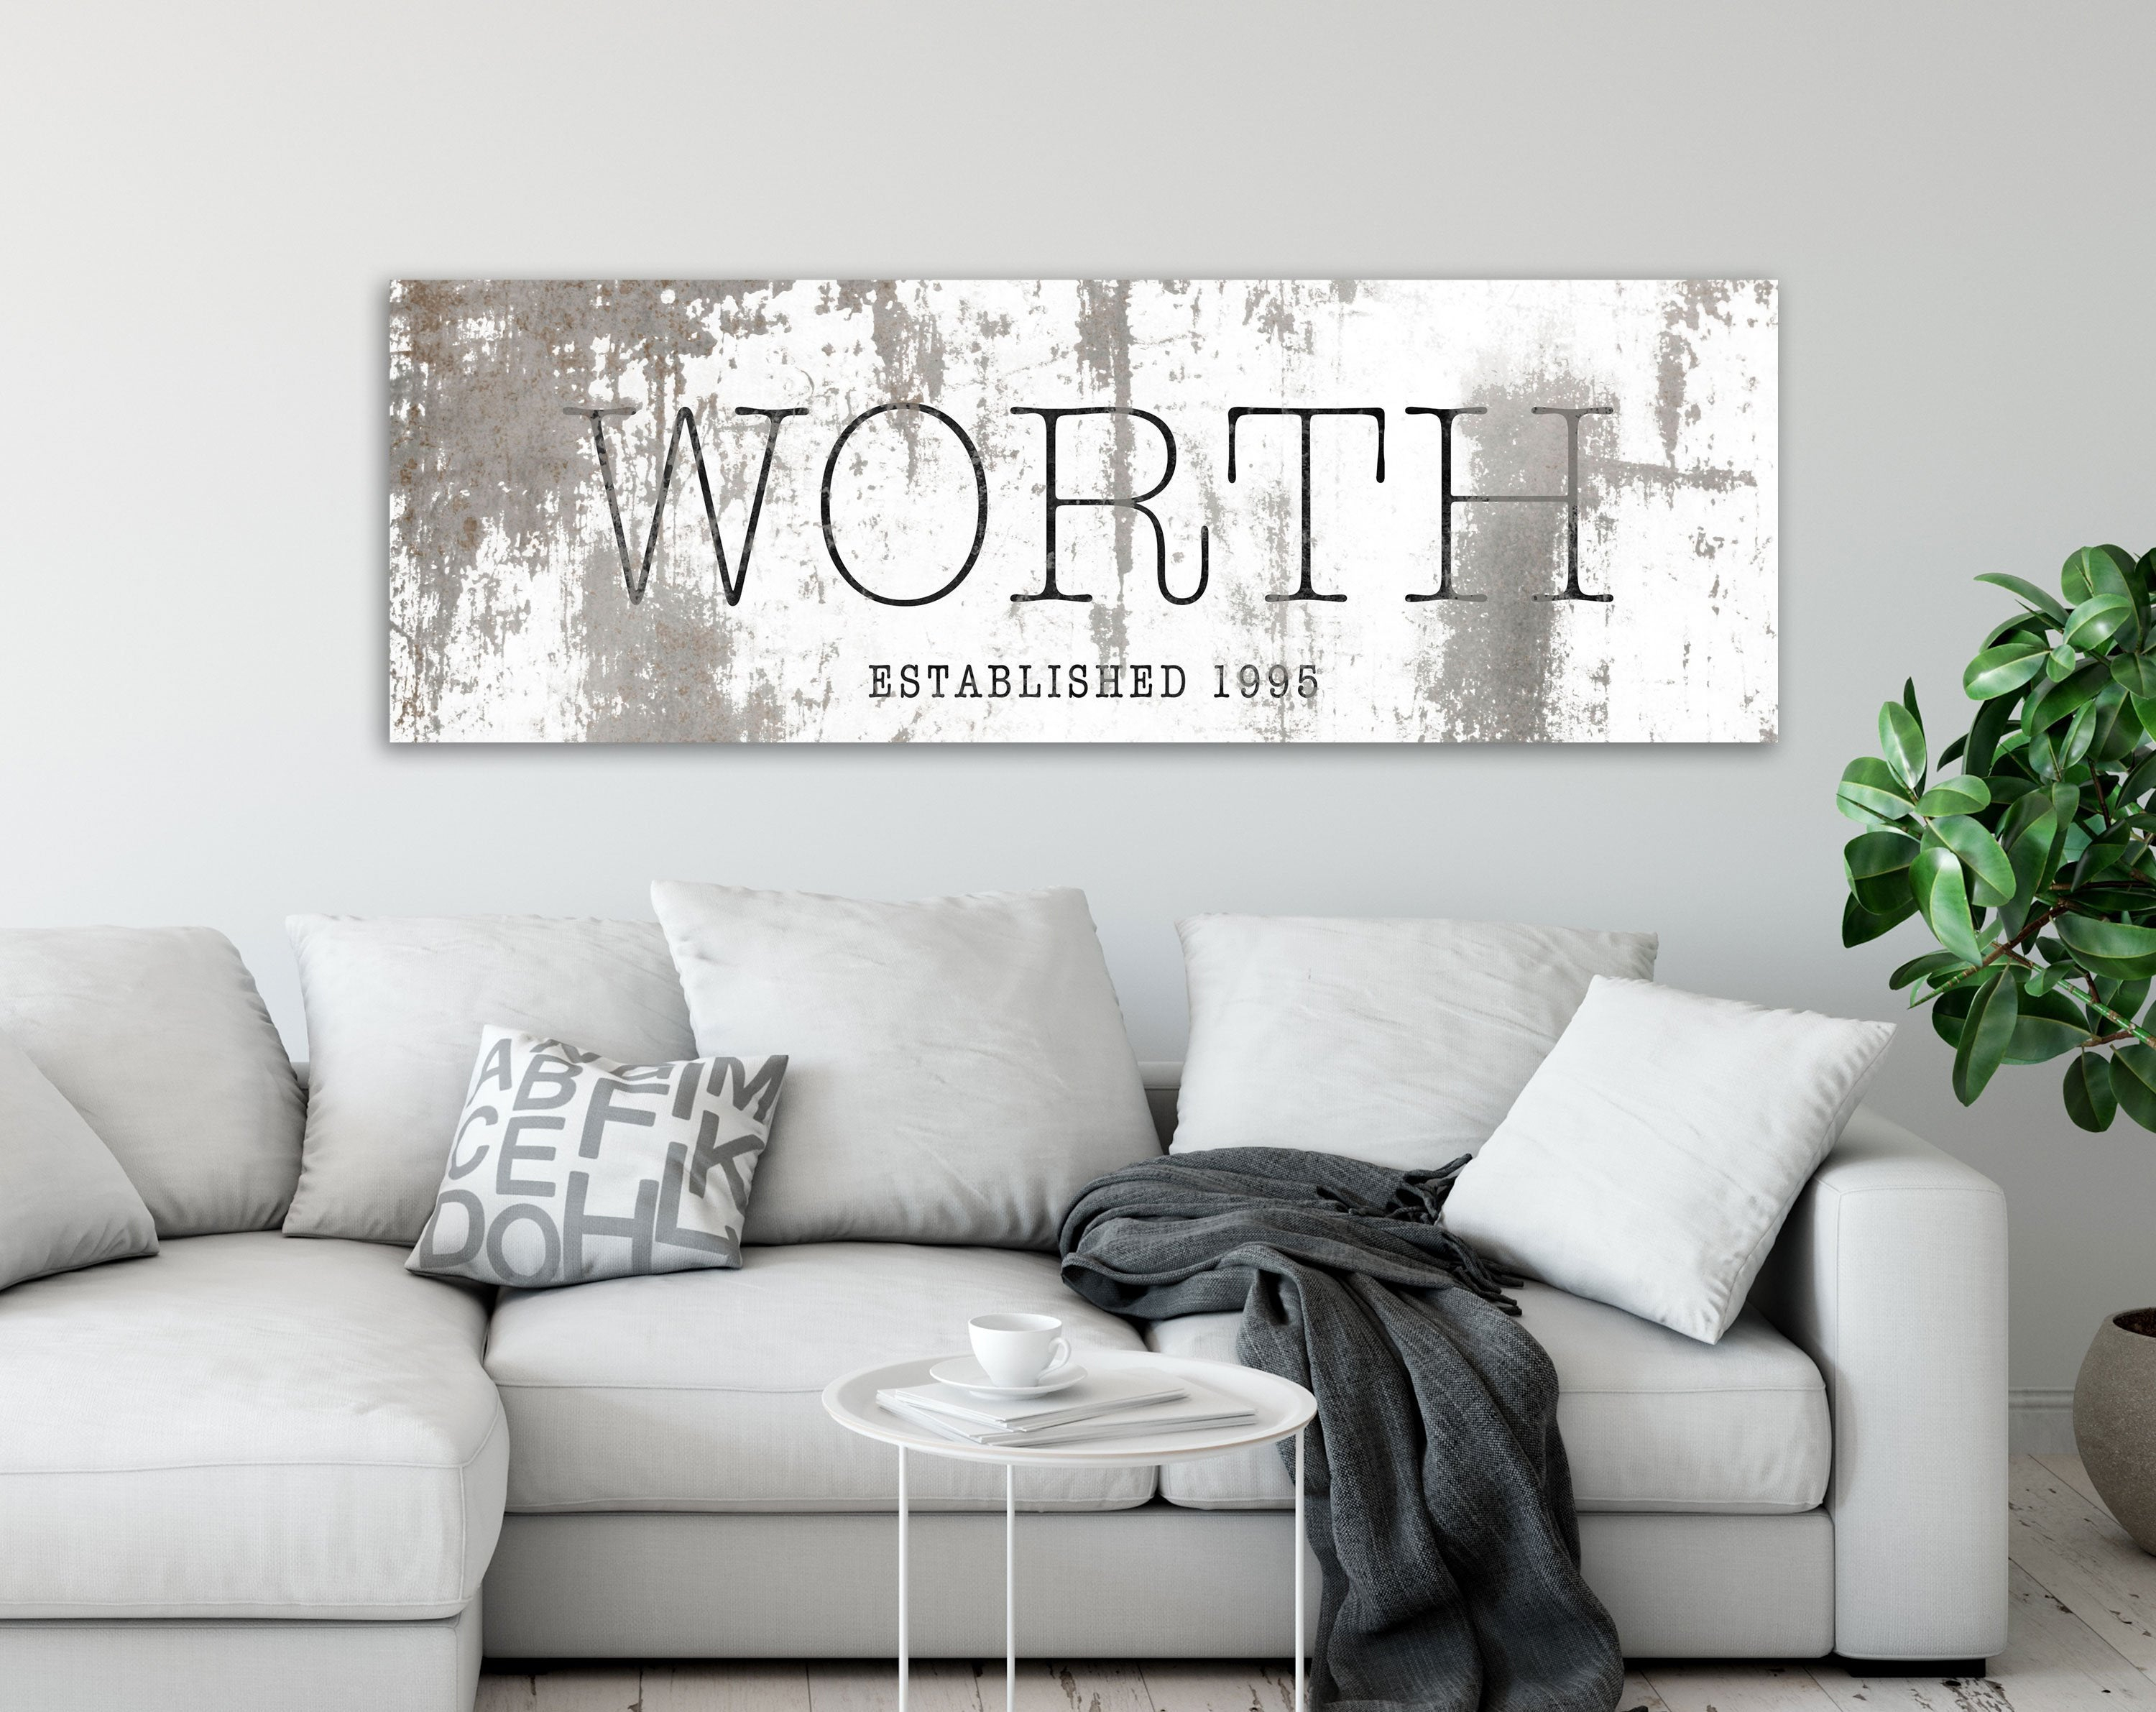 Farmhouse Family Wall Art, Industrial Modern Decor, Large Established Last  Name Sign, Rustic Home Decor Print Regarding Large Modern Industrial Wall Decor (Photo 11 of 30)